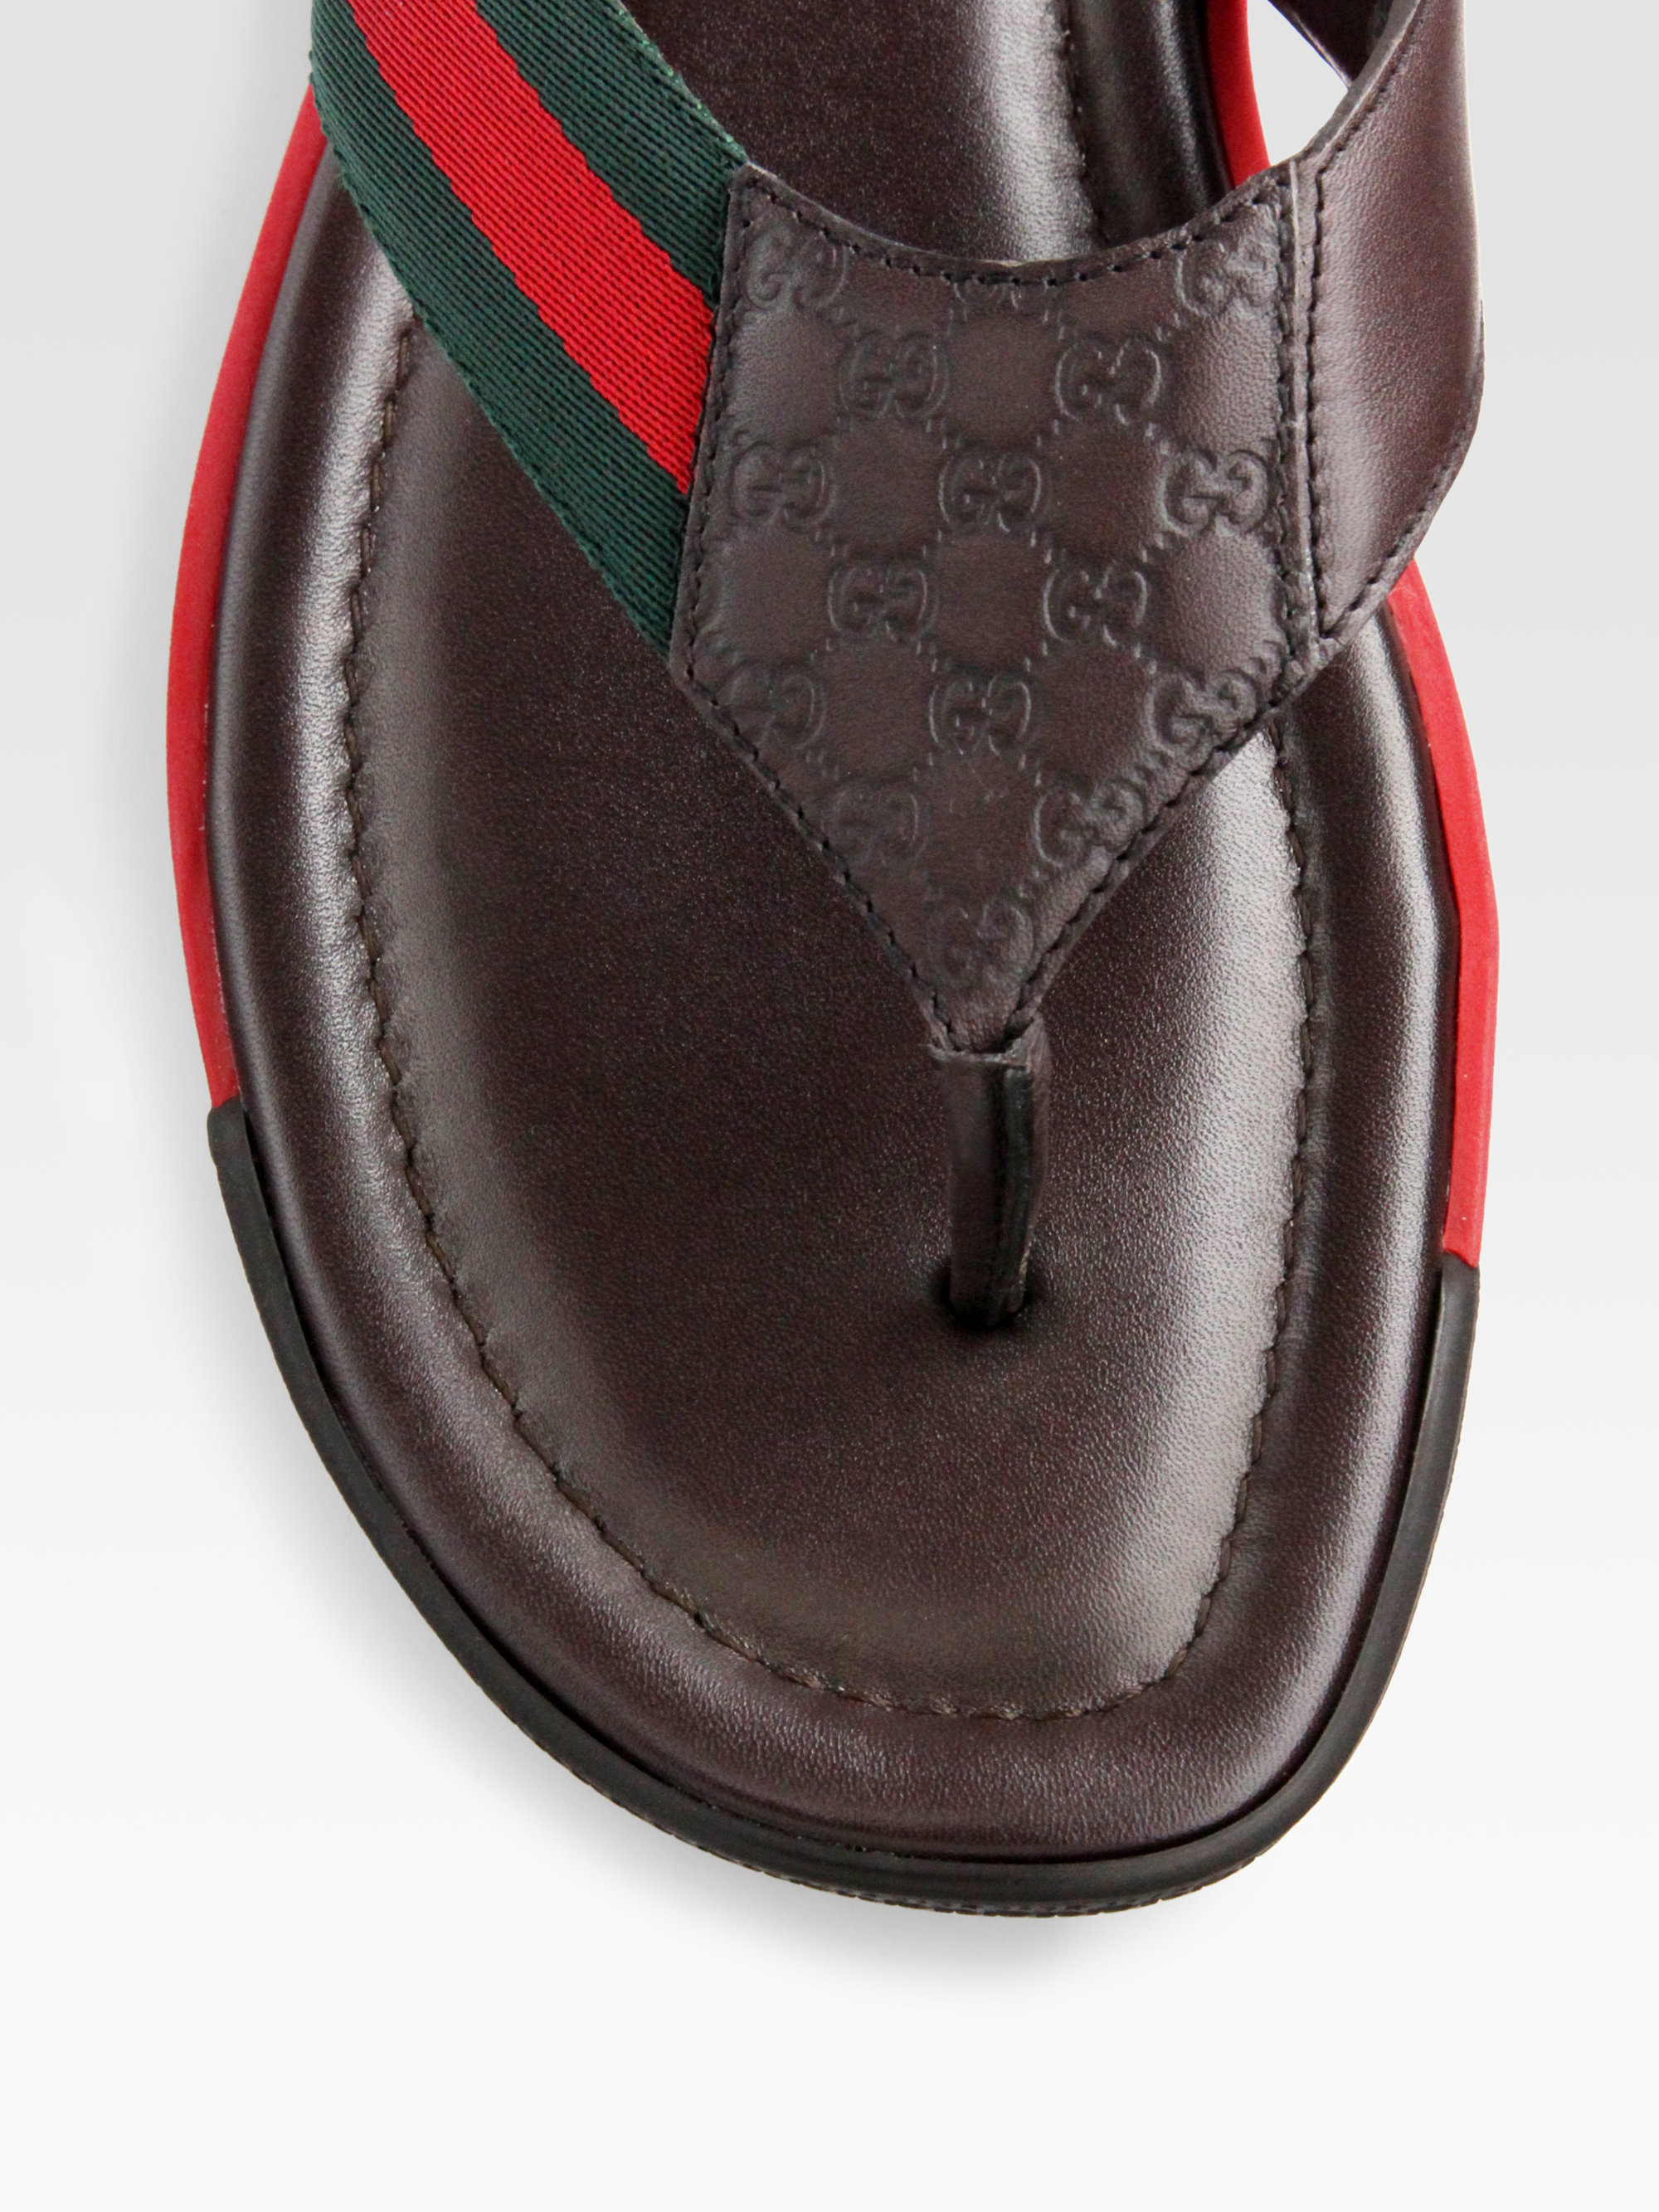 d03bcad21 Gucci Thong Sandals in Brown for Men - Lyst